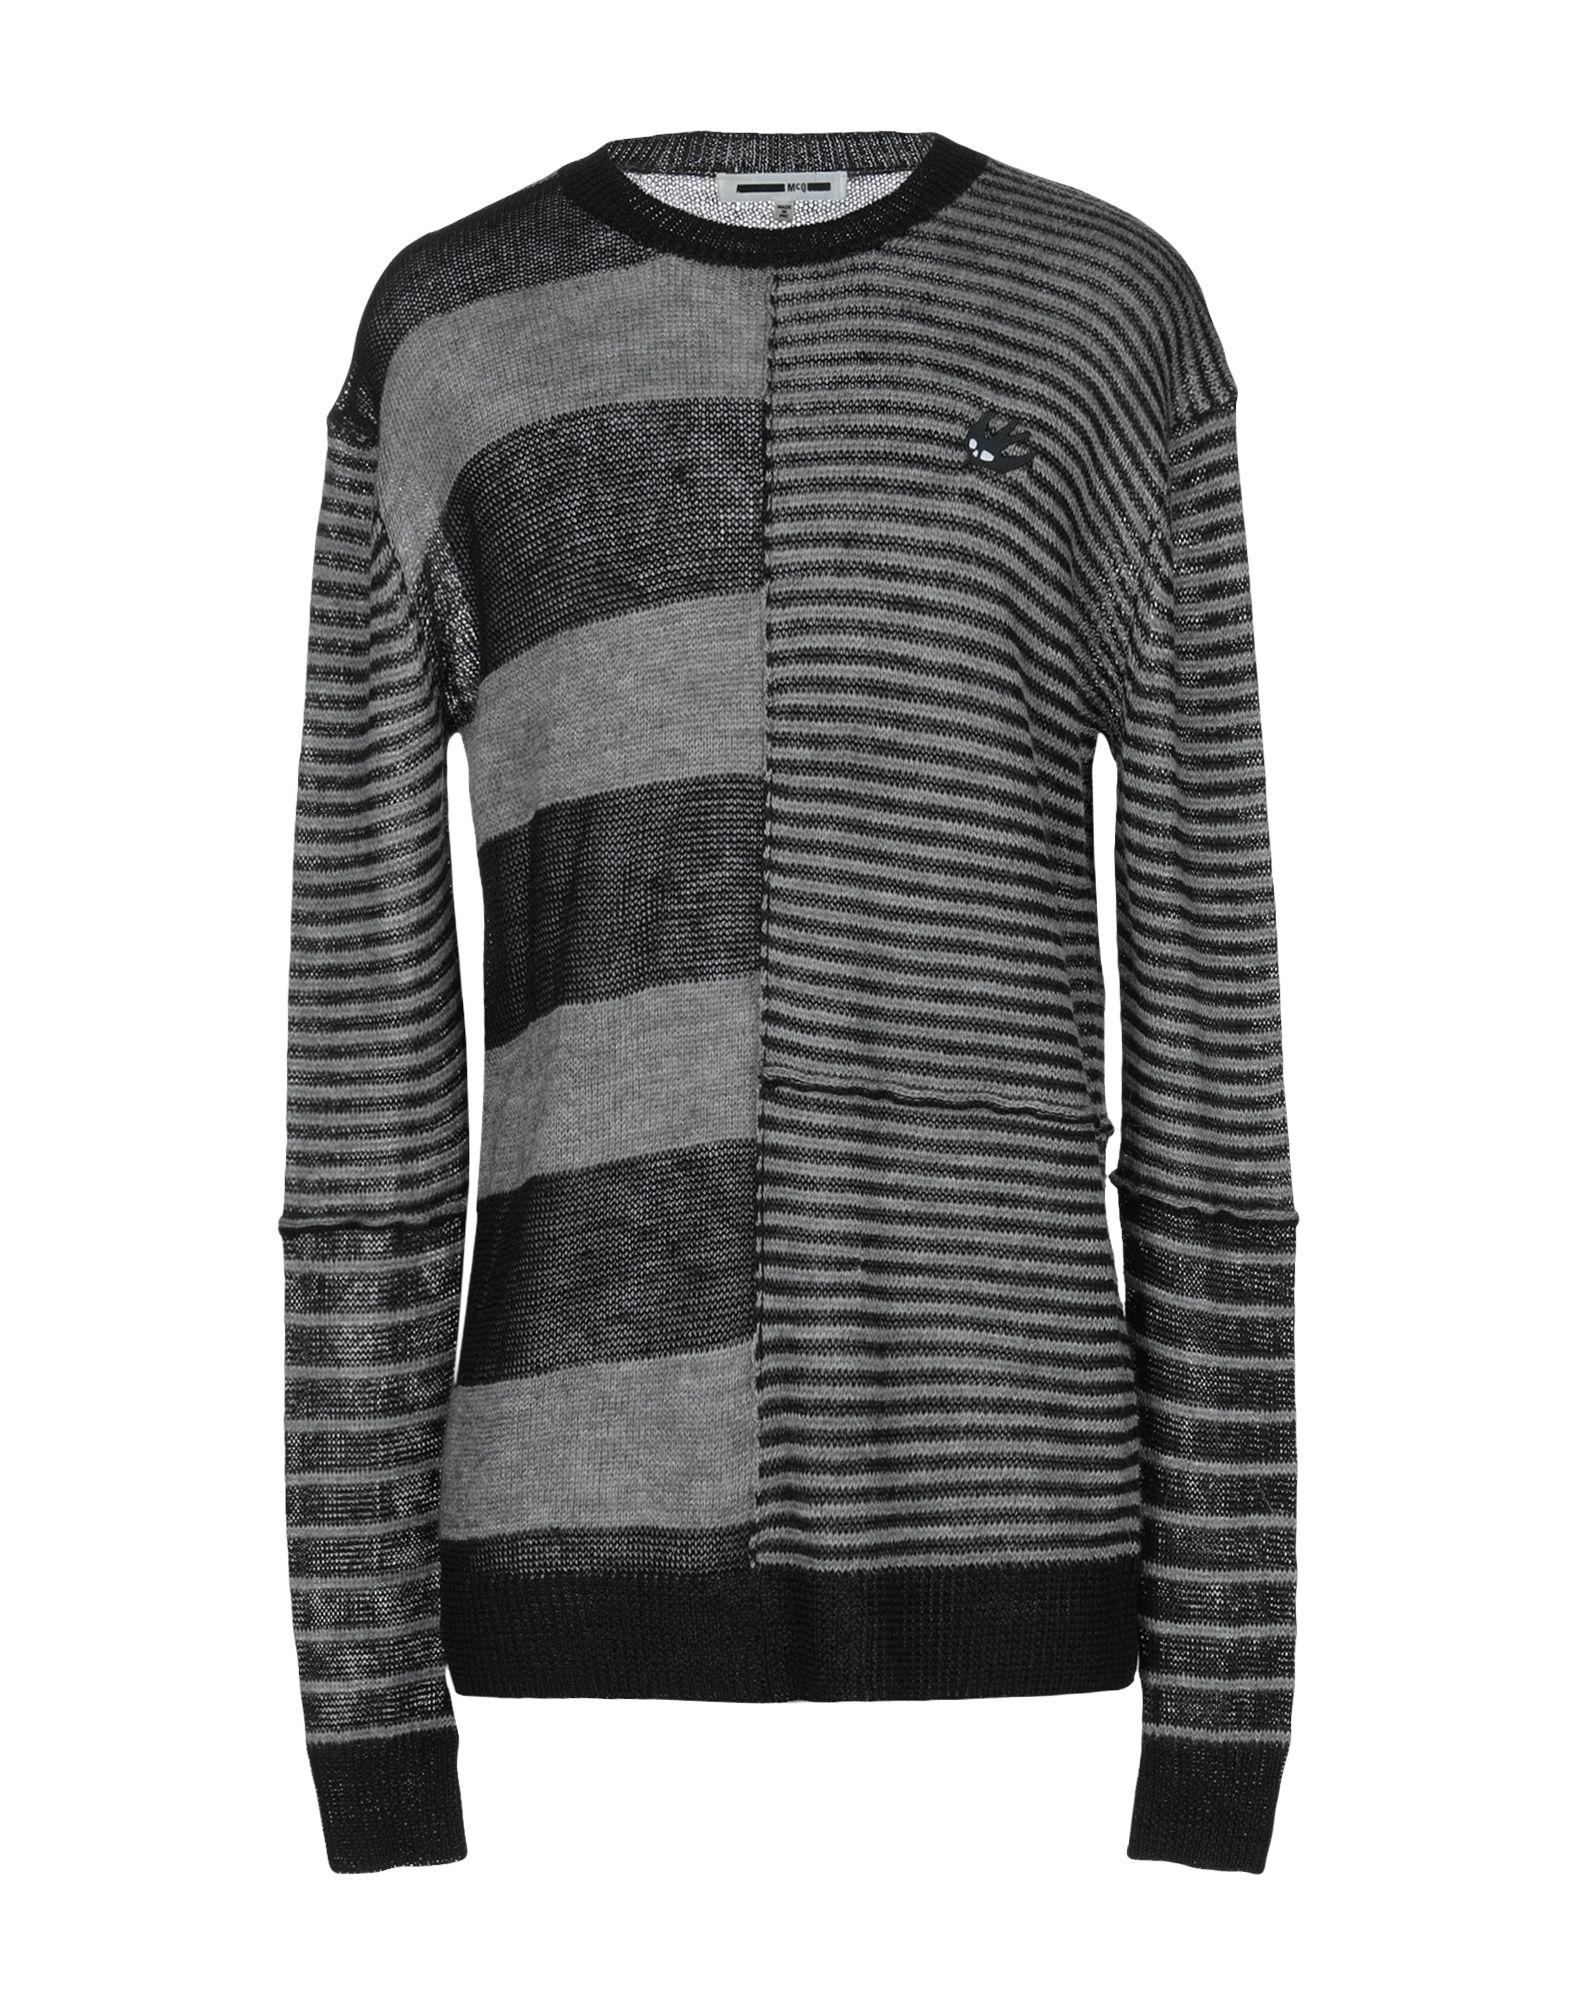 c289a69f36b Lyst - McQ Jumper in Gray for Men - Save 22%